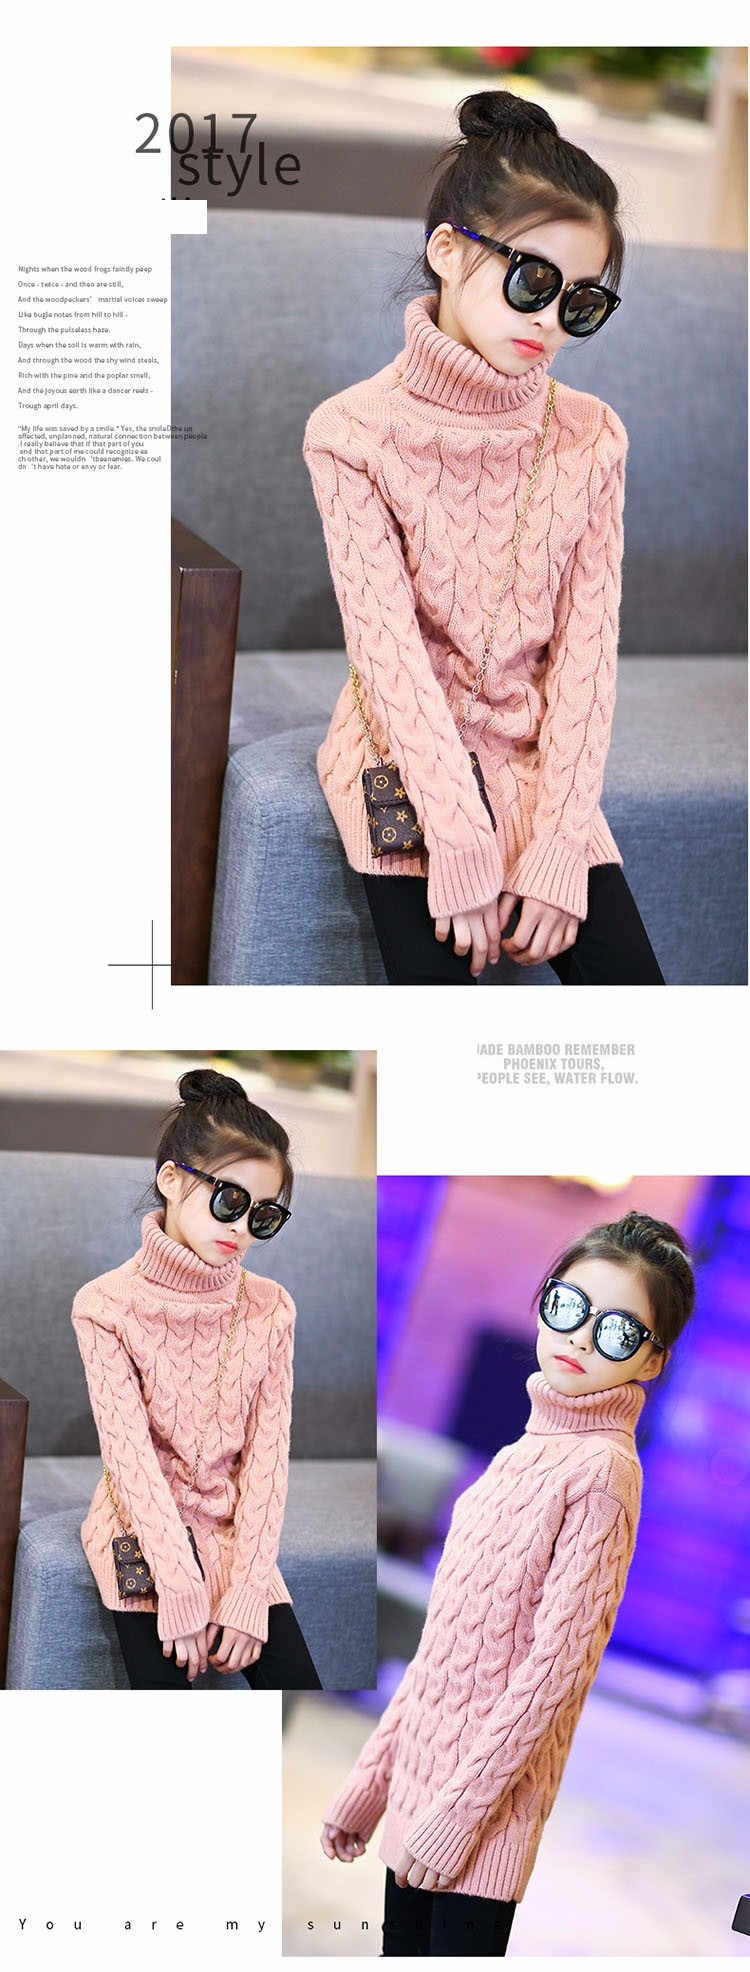 2017 new high neck long knitting girls sweater spring autumn winter turtleneck knitted children sweaters kids girls thick red black beige pink tops 7 8 9 10 11 12 13 14 15 years little big teenage girls sweater winter casual children (13)